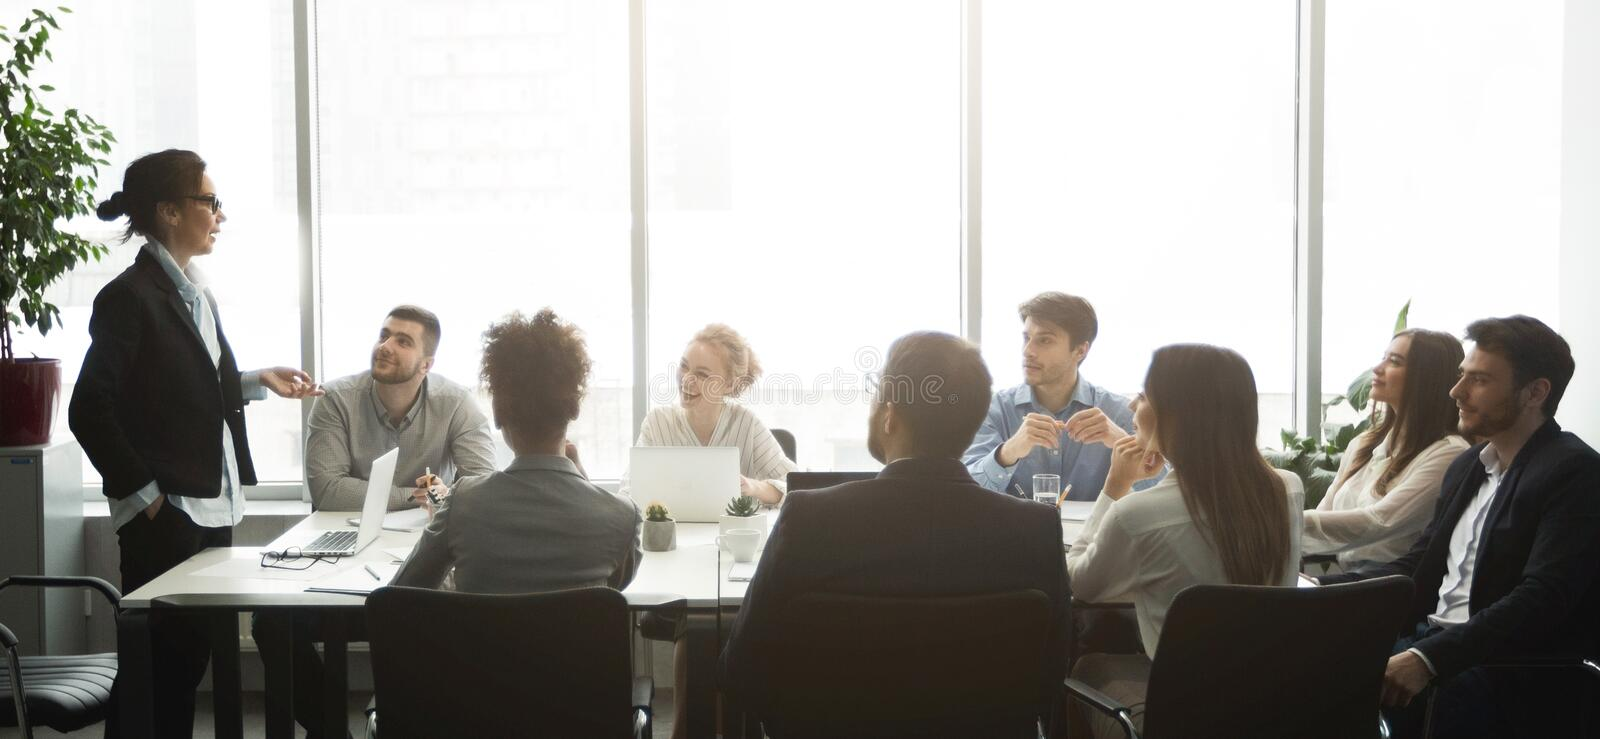 Professional business team having brainstorm meeting, panorama stock images